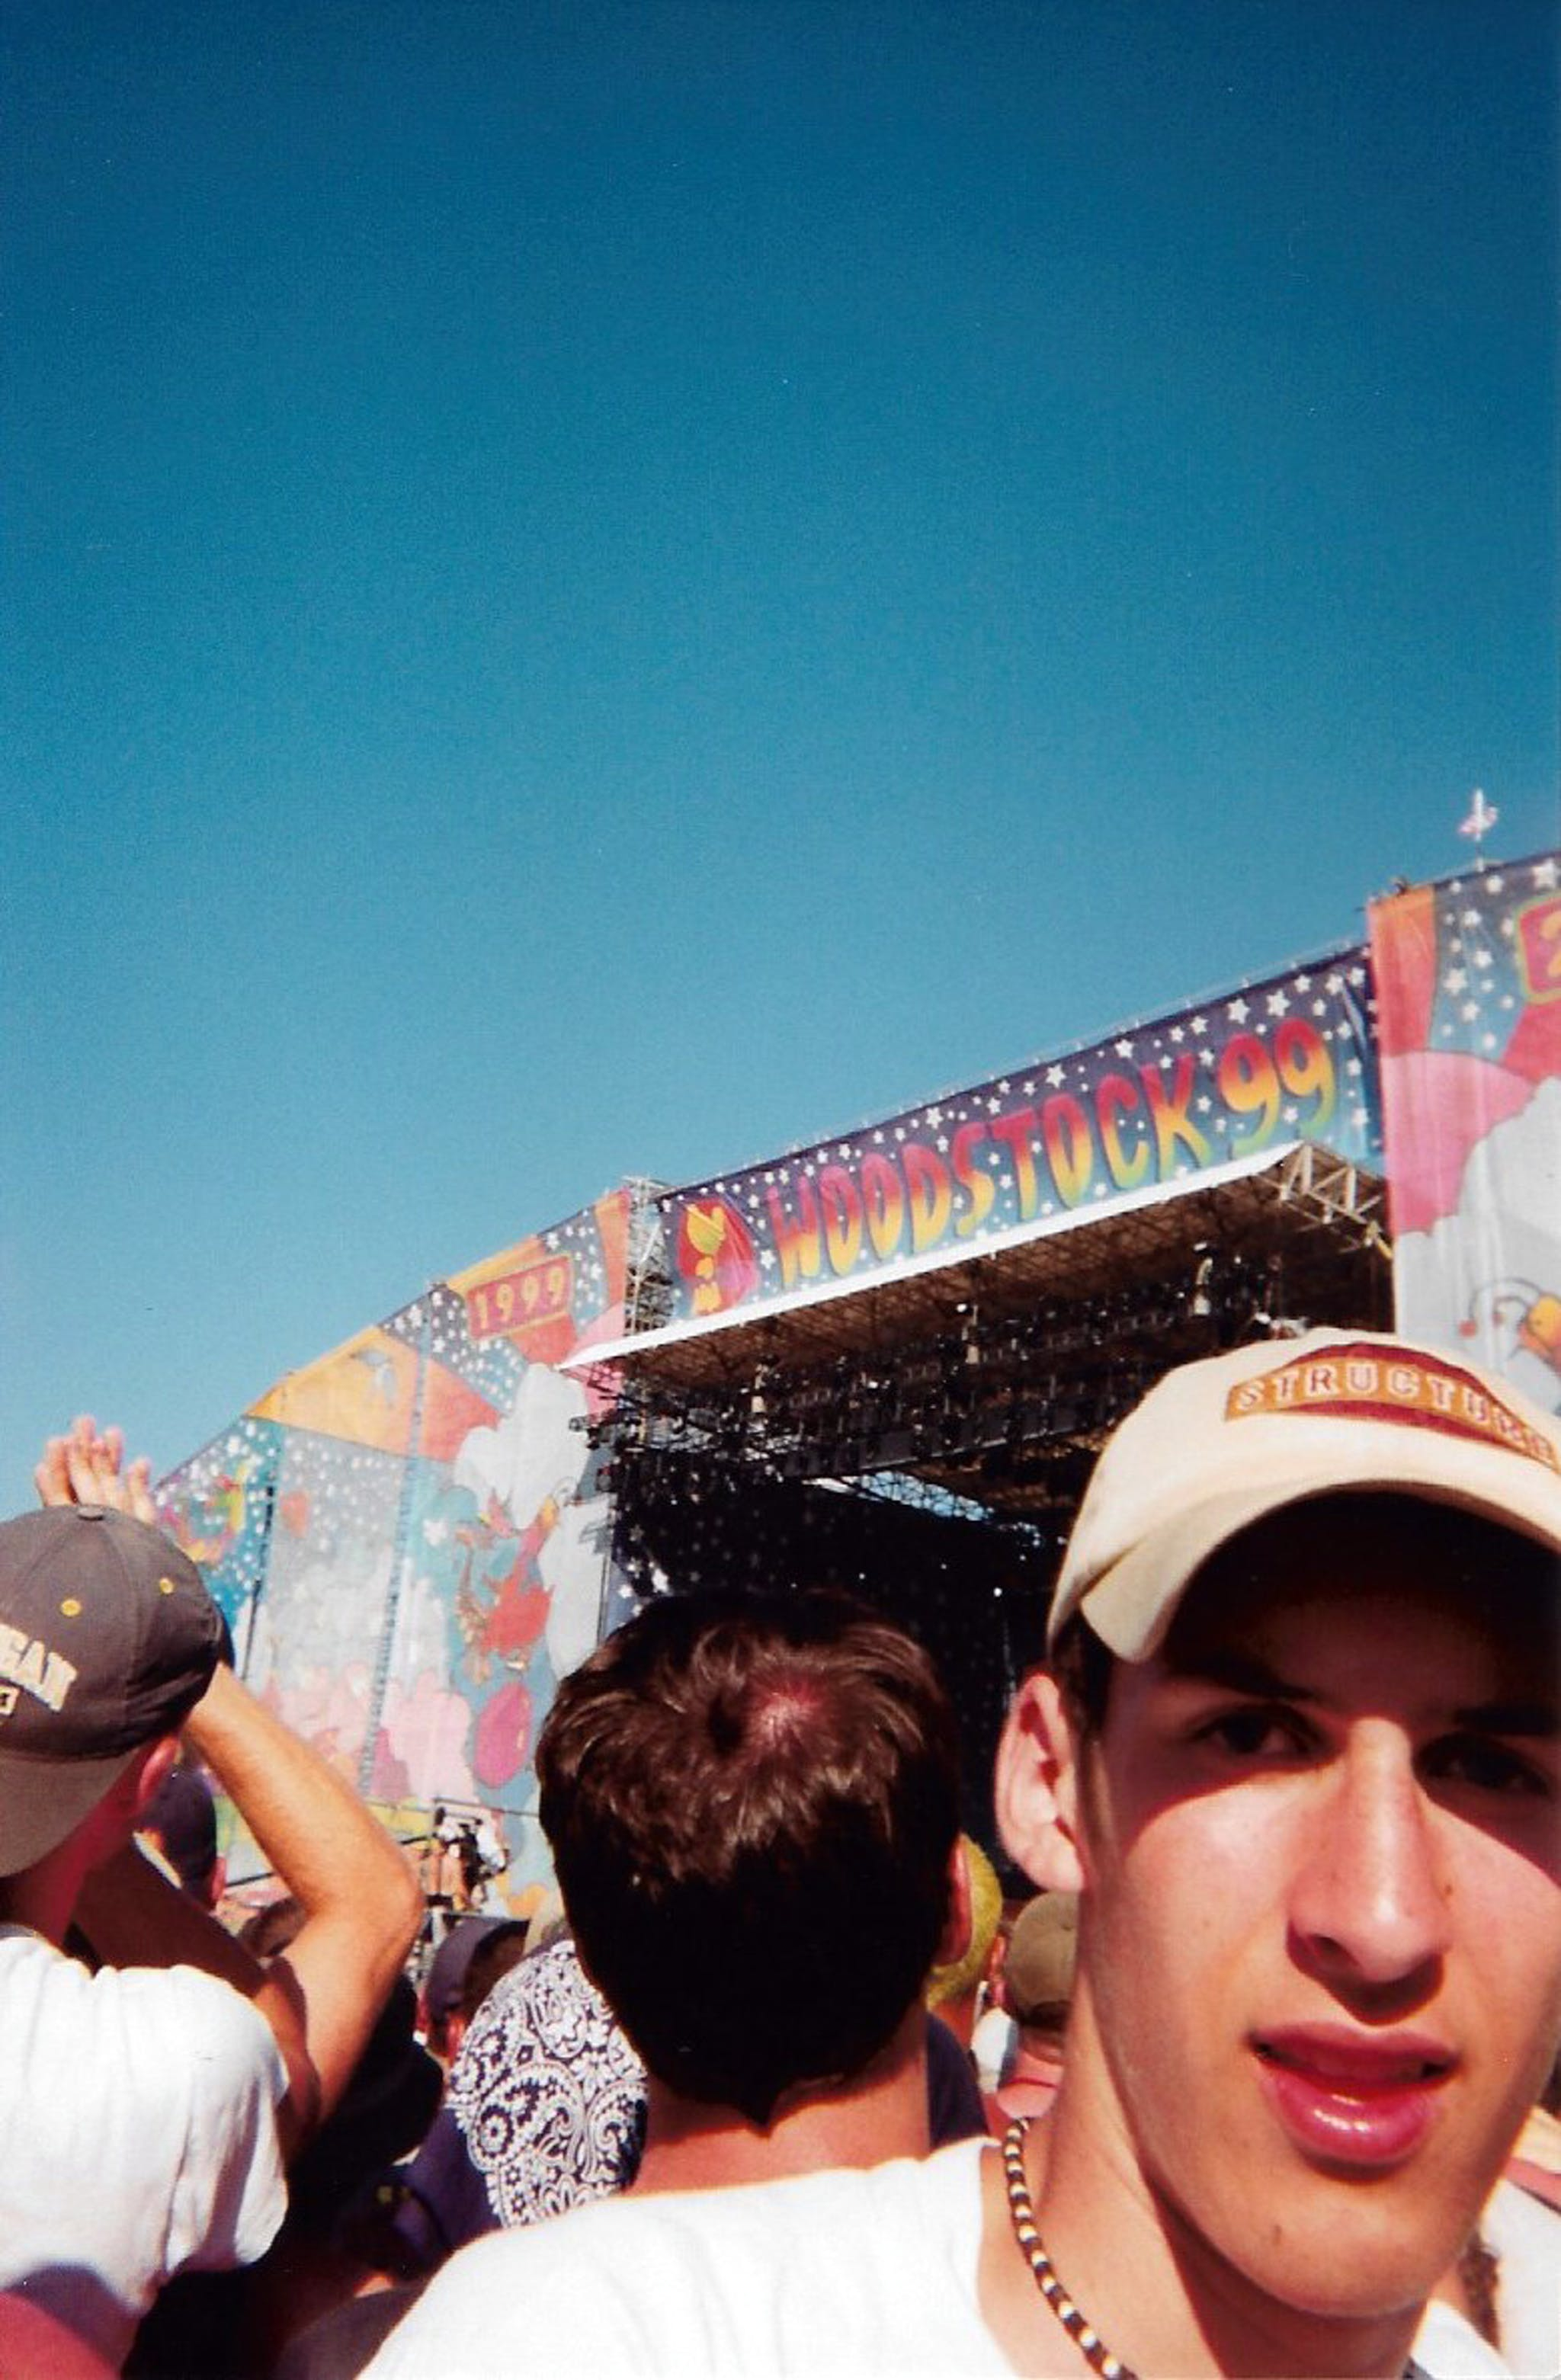 I Was At Woodstock '99 And It Destroyed My Innocence